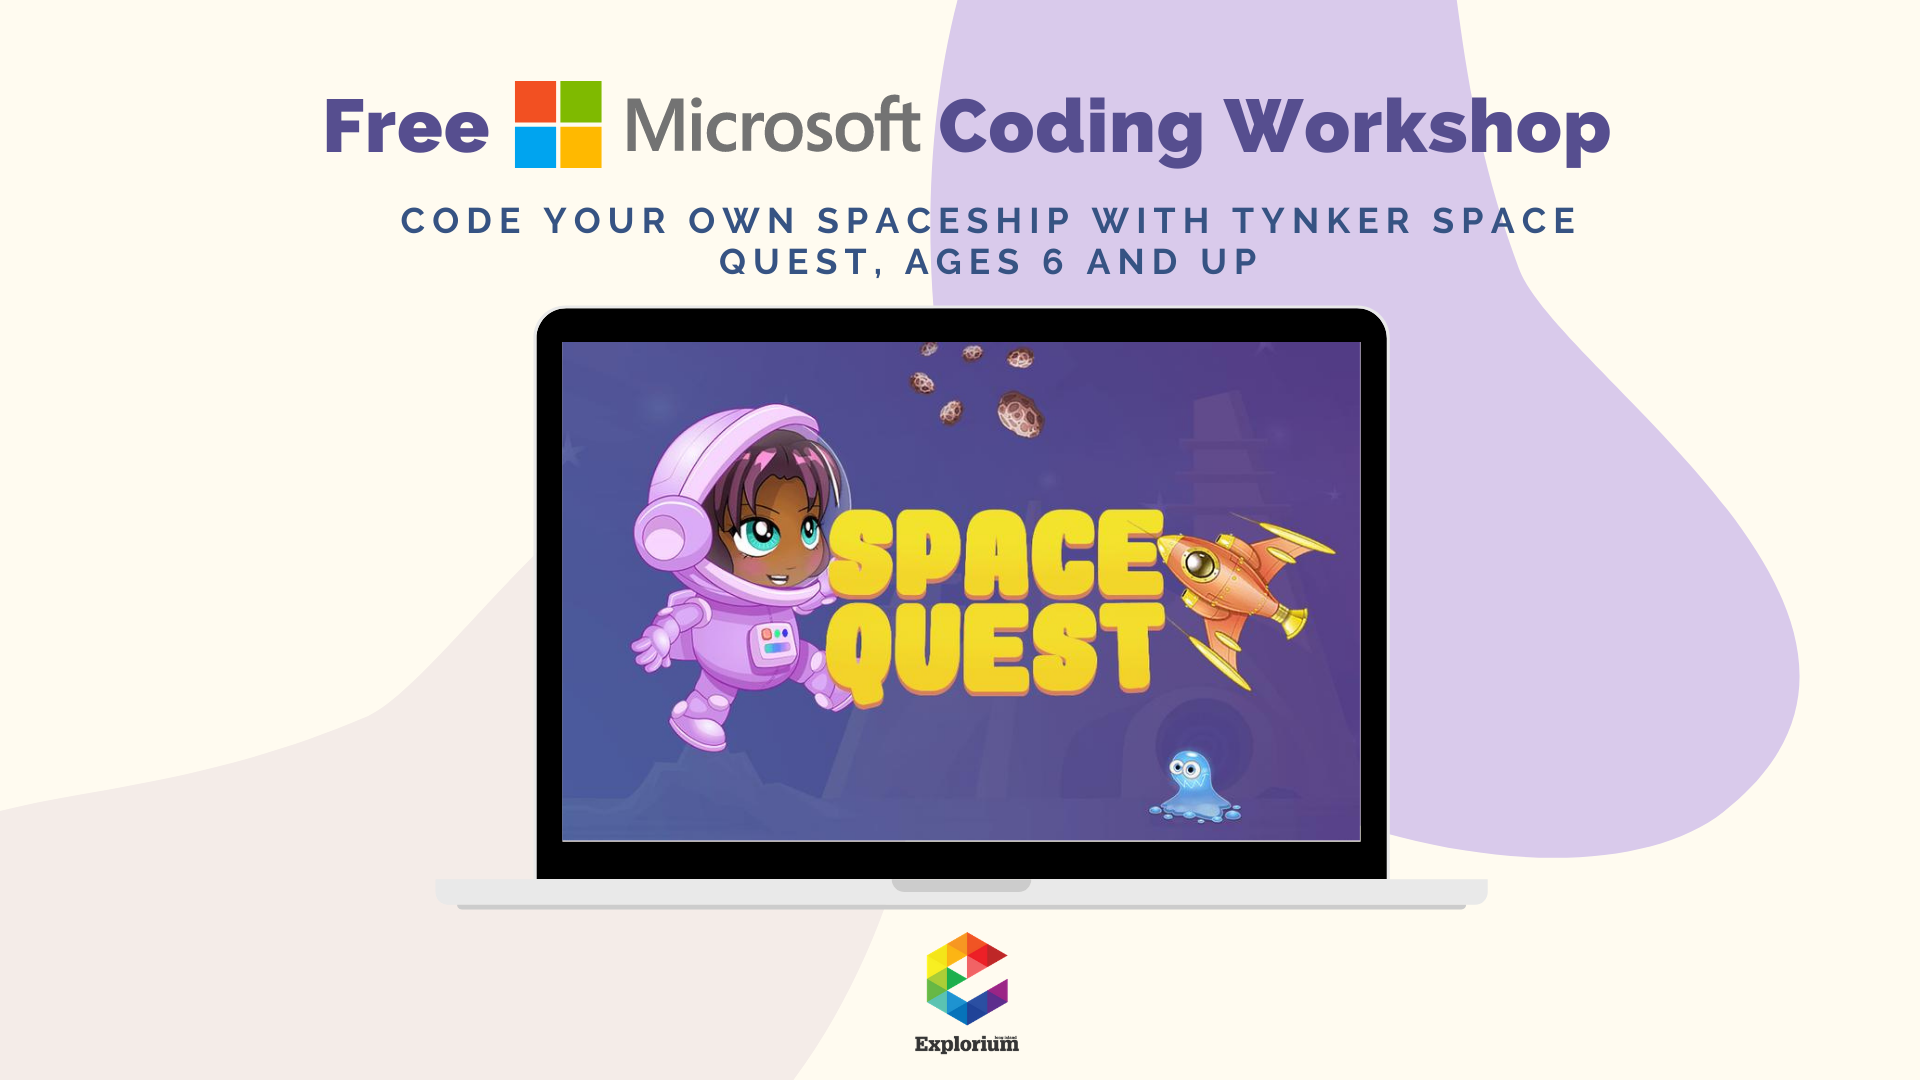 Code your Own Spaceship Tynker Space Quest workshop event - feb 11th